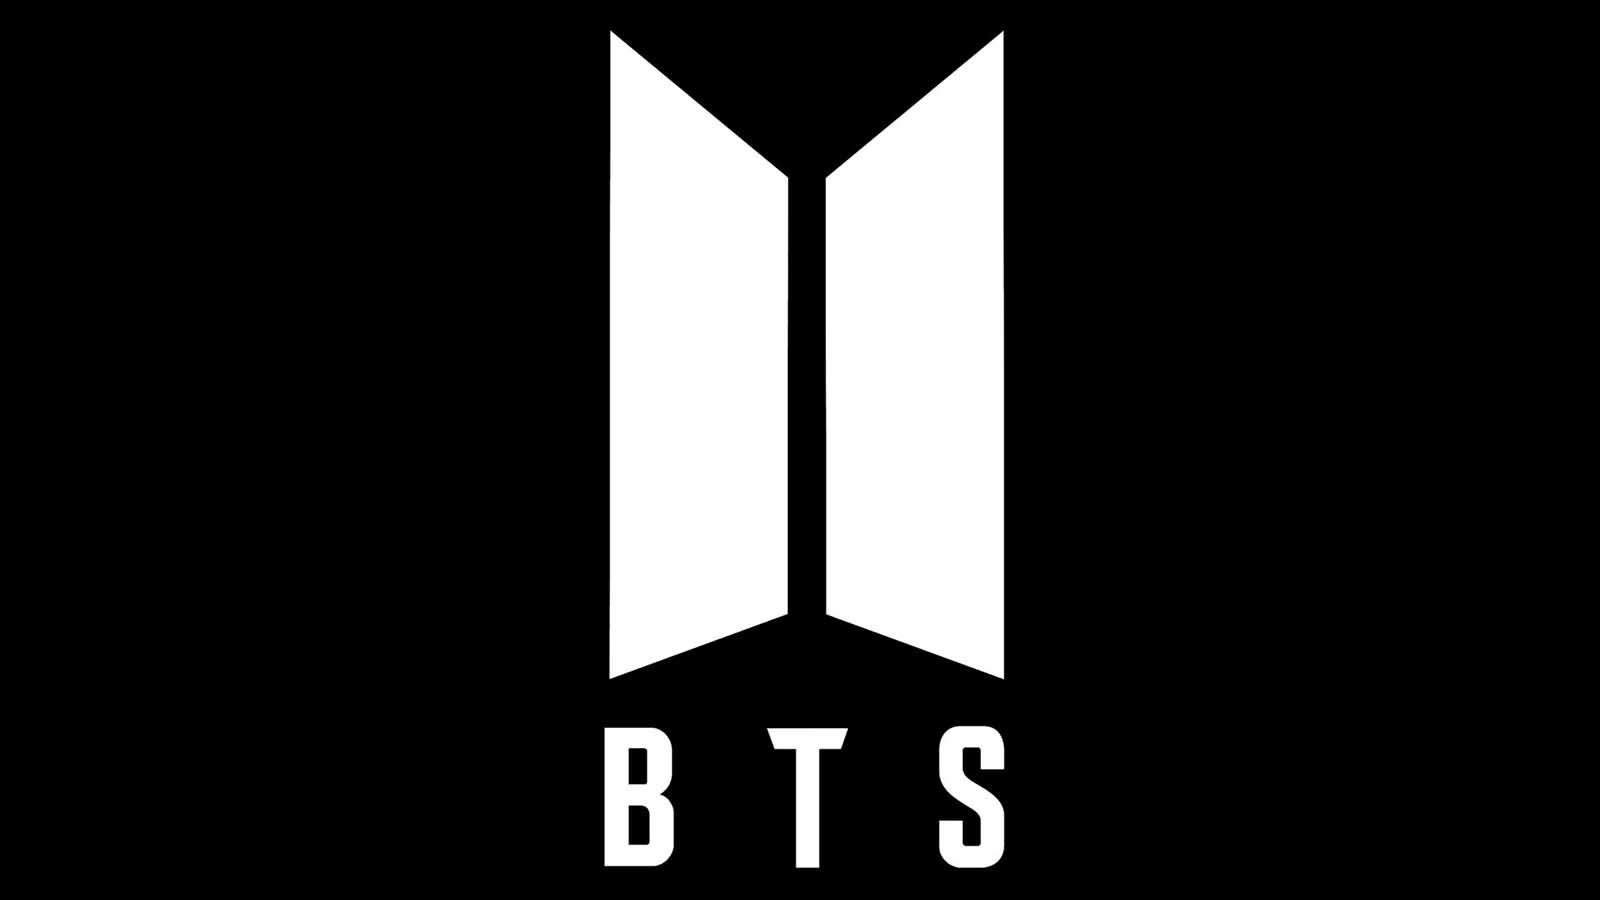 We couldn't imagine a world without the iconic BTS logo we have today. But what did it take to get this unique logo?